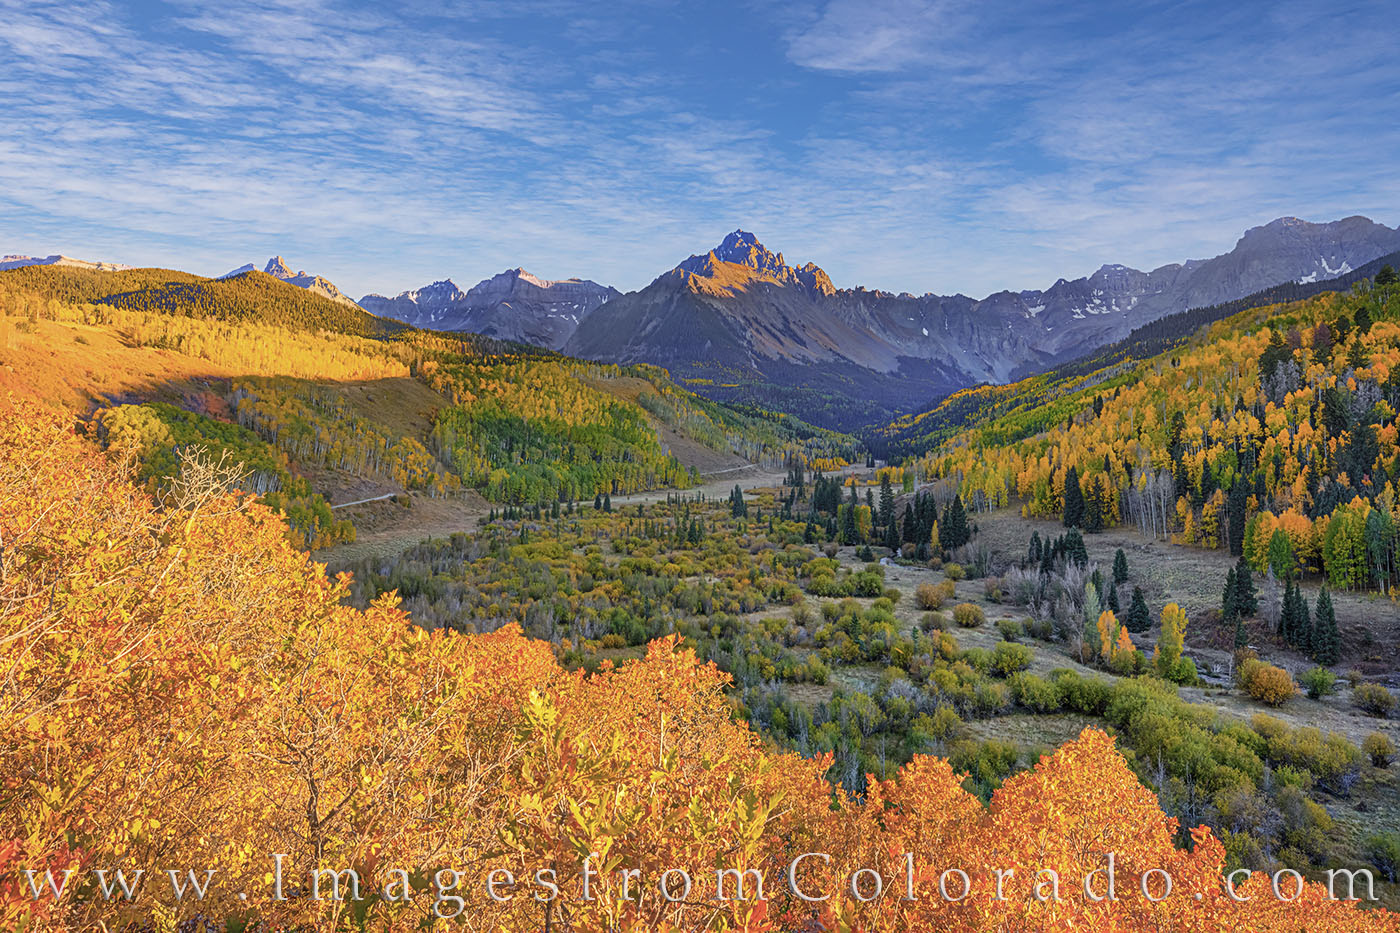 aspen, fall, scrub oak, gold, sneffels, country road 7, ridgway, autumn, photo